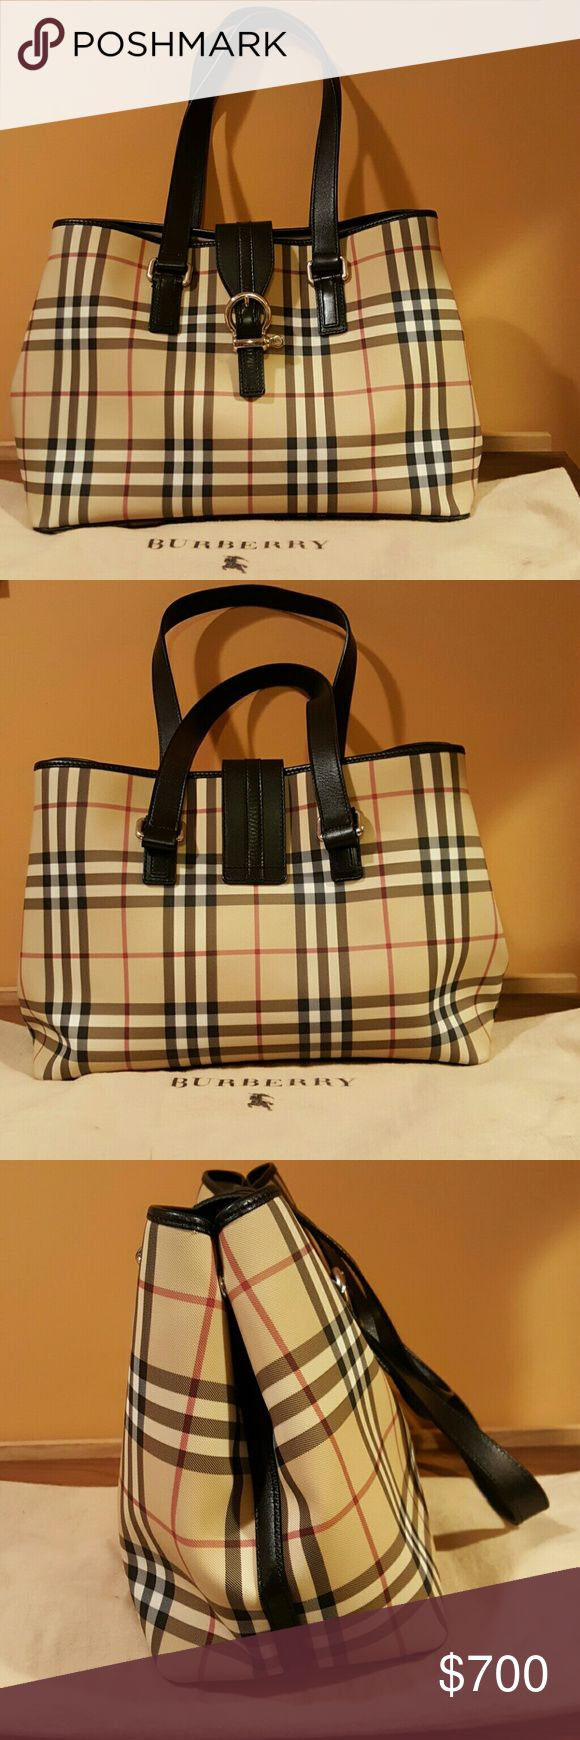 Burberry Women's Handbag Pre-owned in a really good condition. Burberry Bags Totes